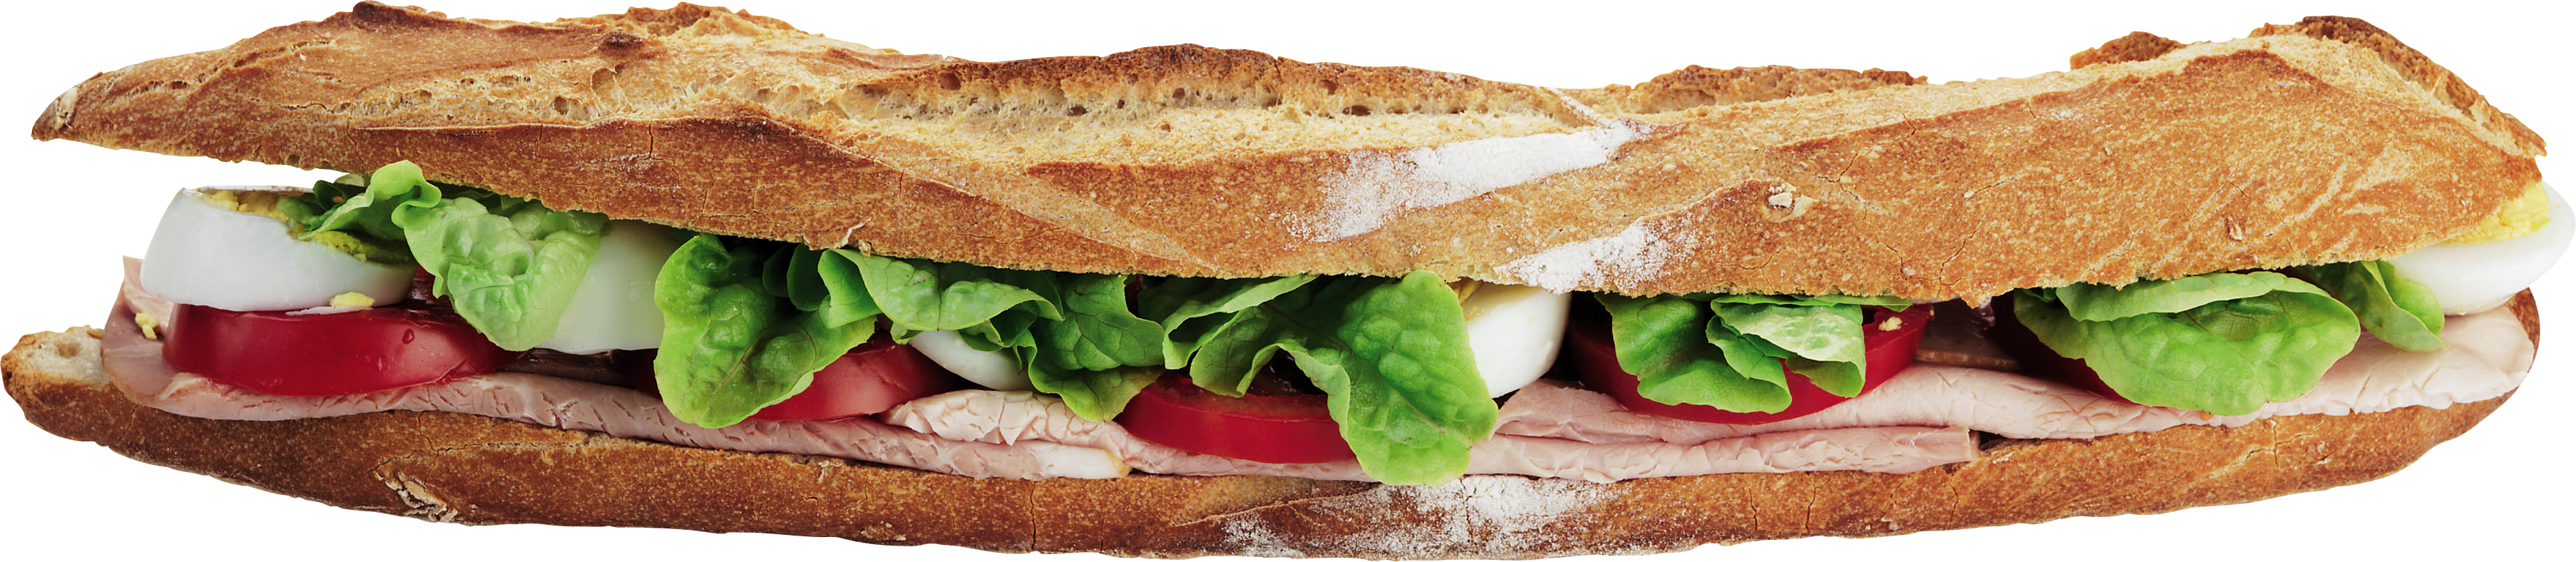 Sandwich Picture PNG Images